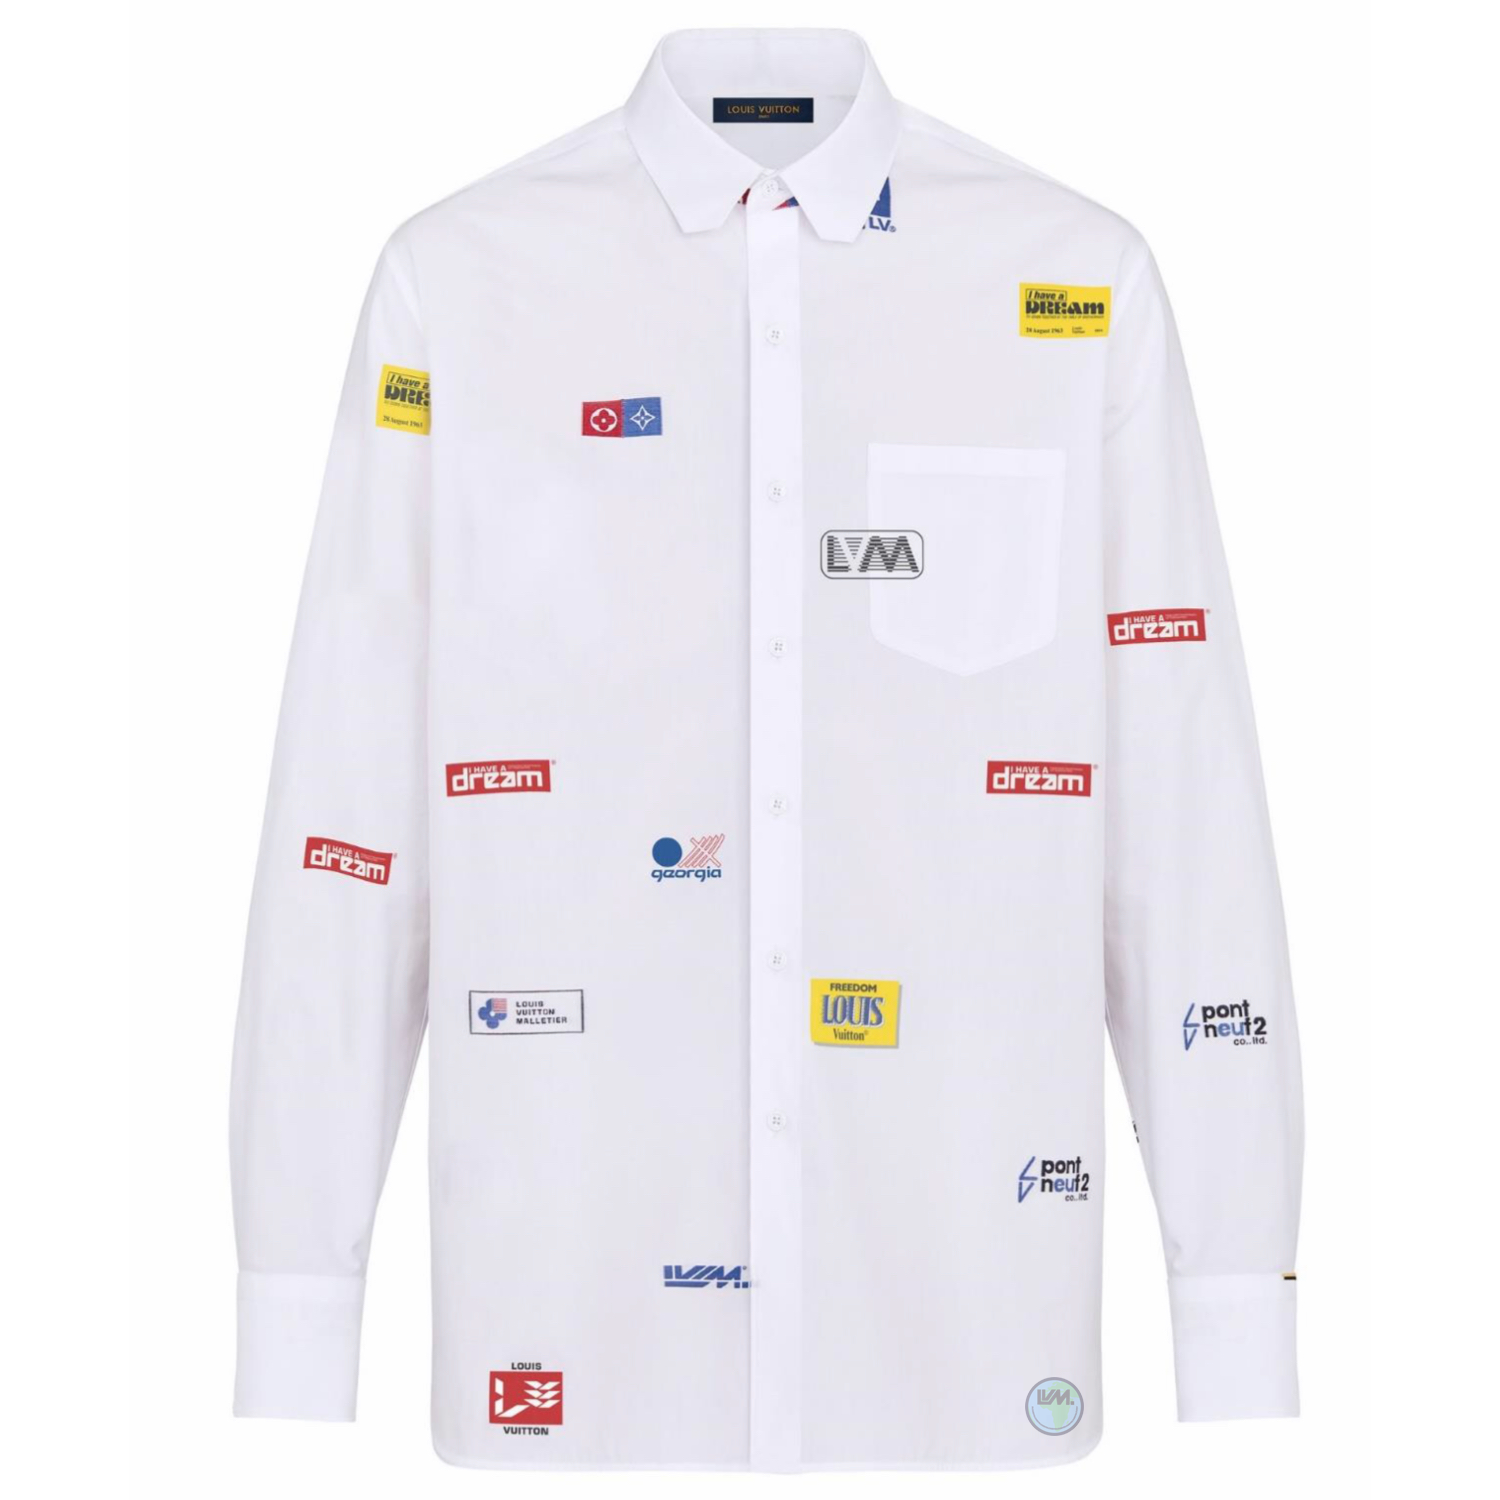 LOGO DNA SHIRT - €690 $9201A5DAOBLANC